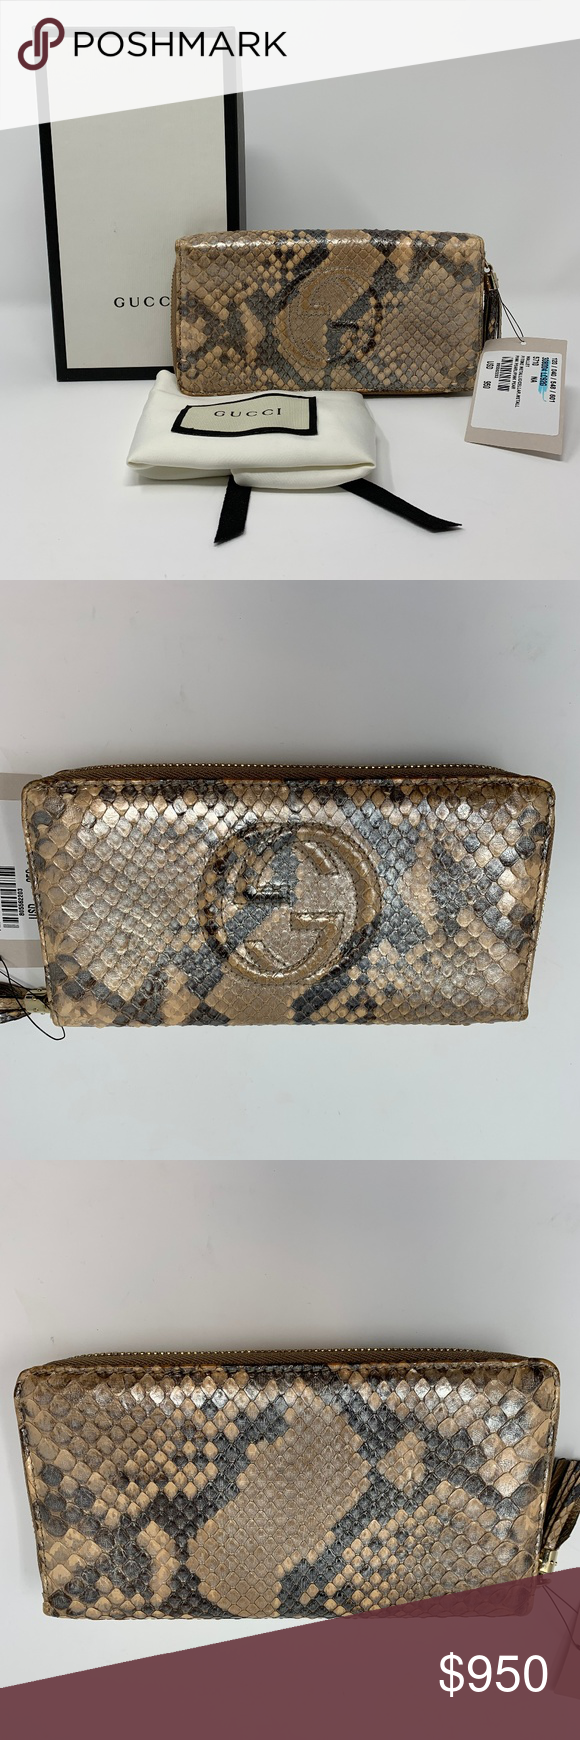 f7125184ea70 Gucci Python Snack Pink Metallic Pearl Zip Wallet Overall Condition is  Brand new with Tag Attached